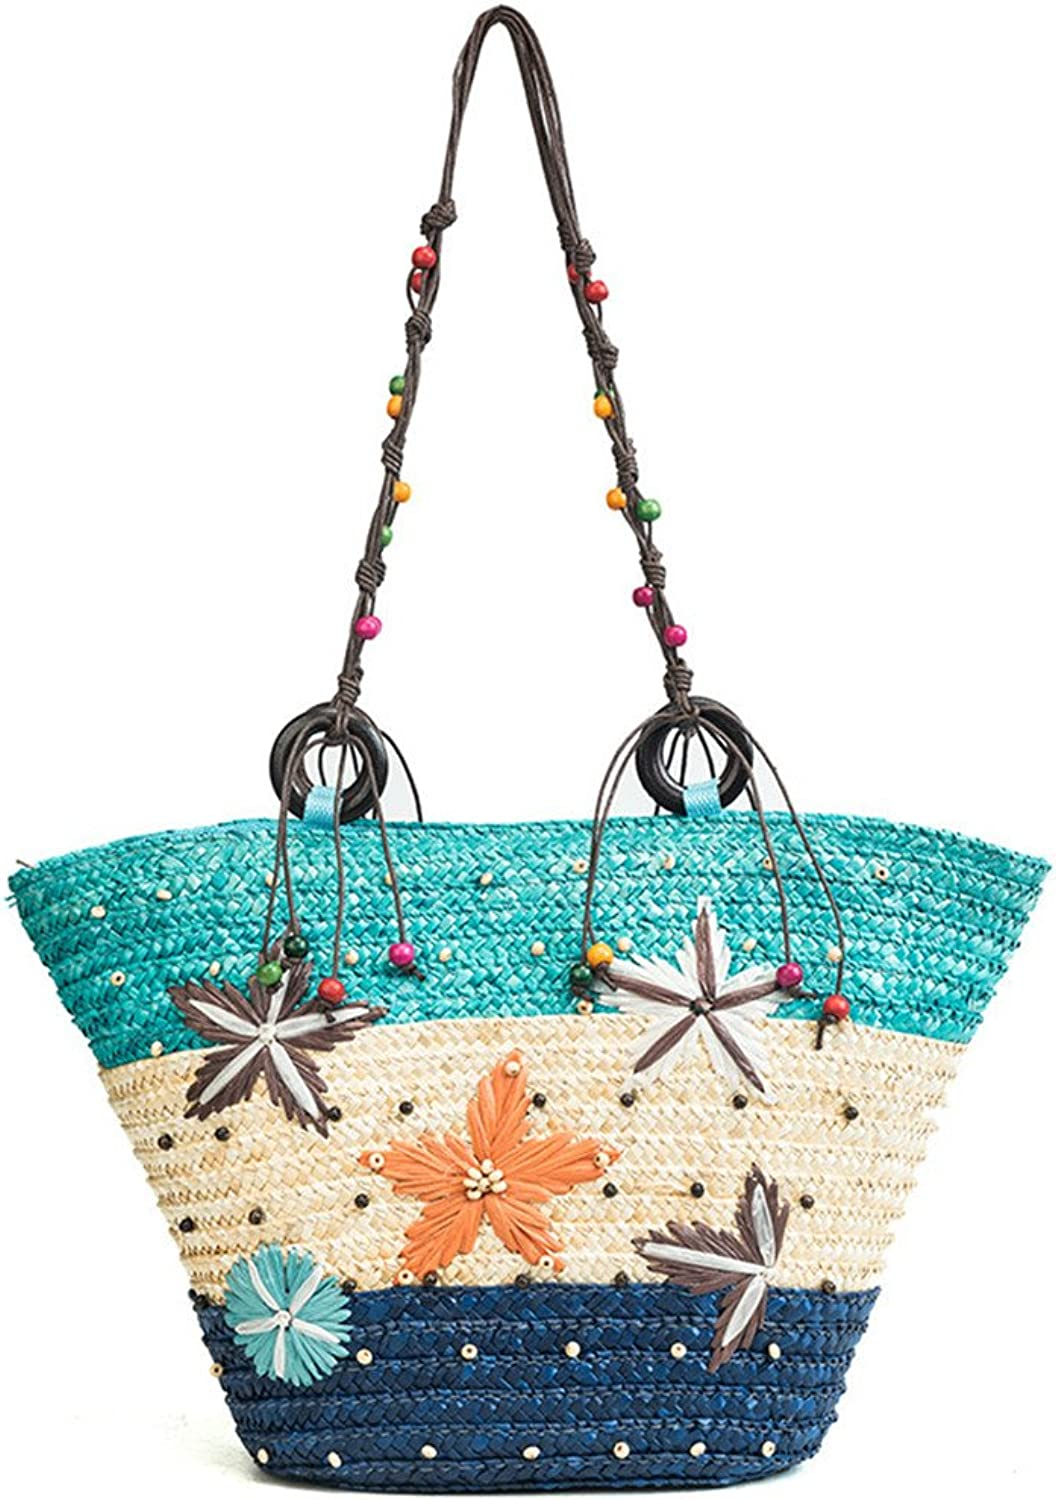 FTSUCQ Floral Handmade Crochet Straw Woven Shoulder Handbags Tote Beach Bag Satchels